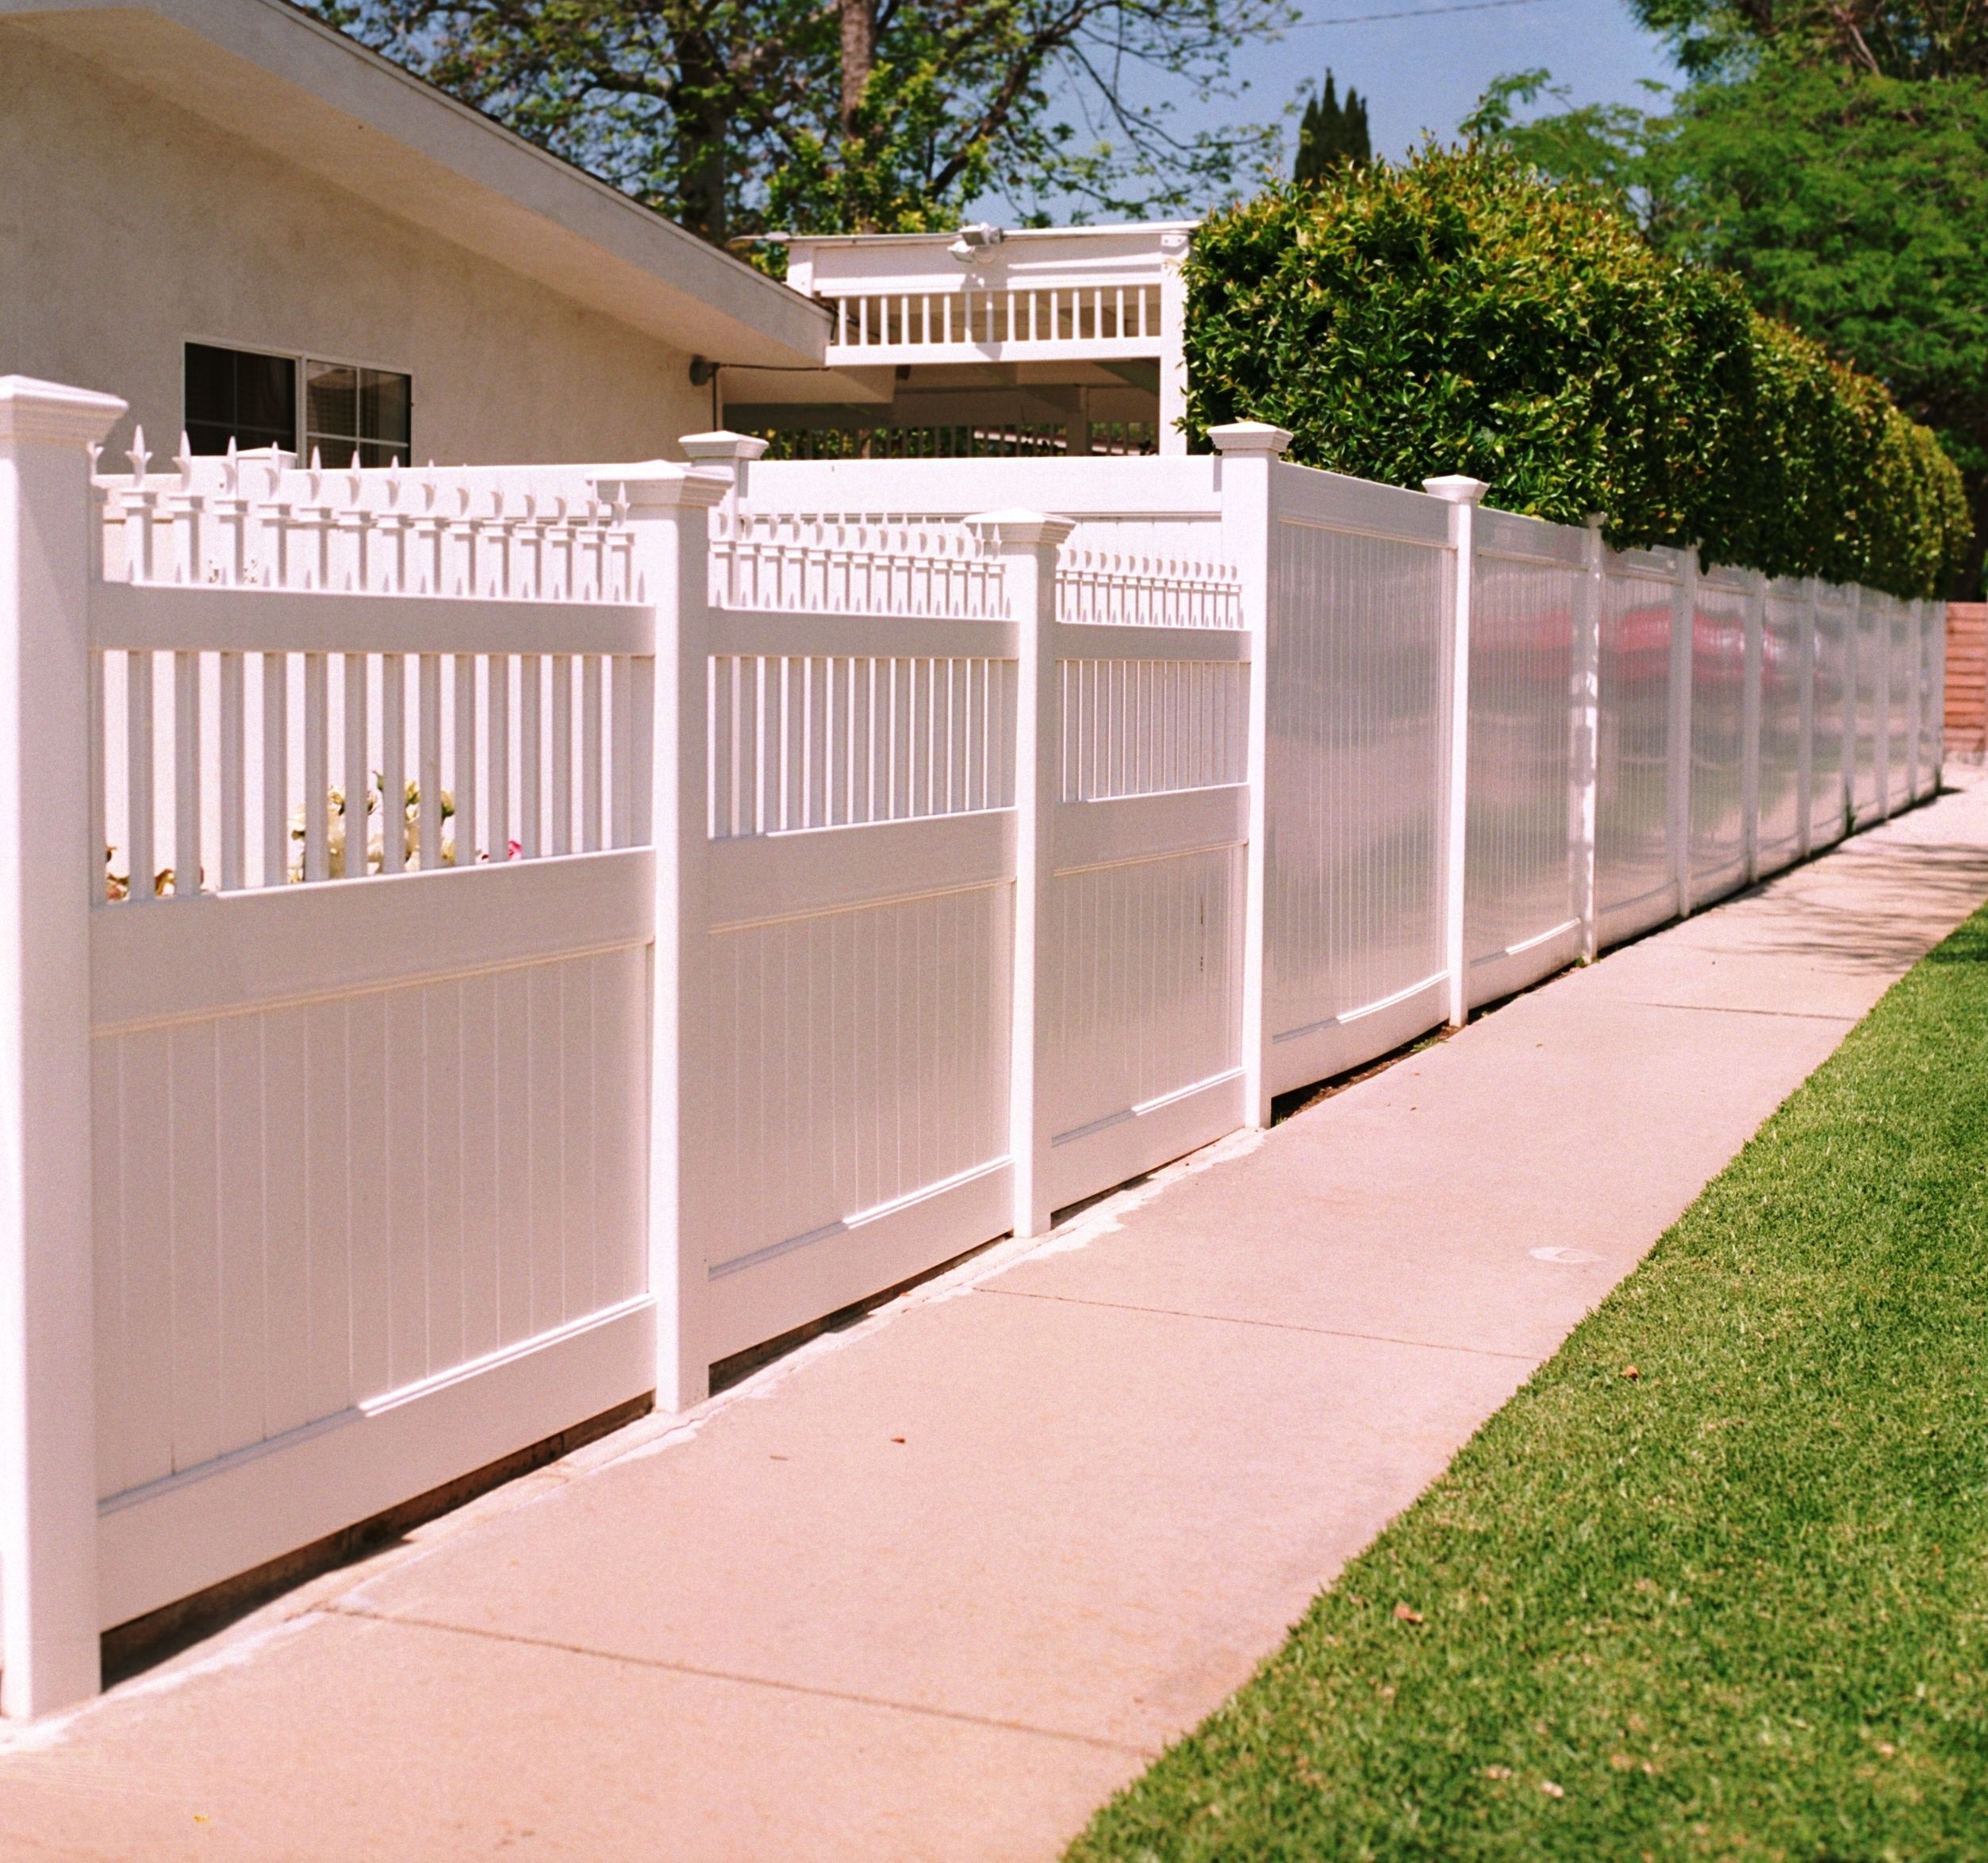 San Diego Apartments With Backyard: Vinyl Privacy Fences Have Tongue And Groove Pickets That